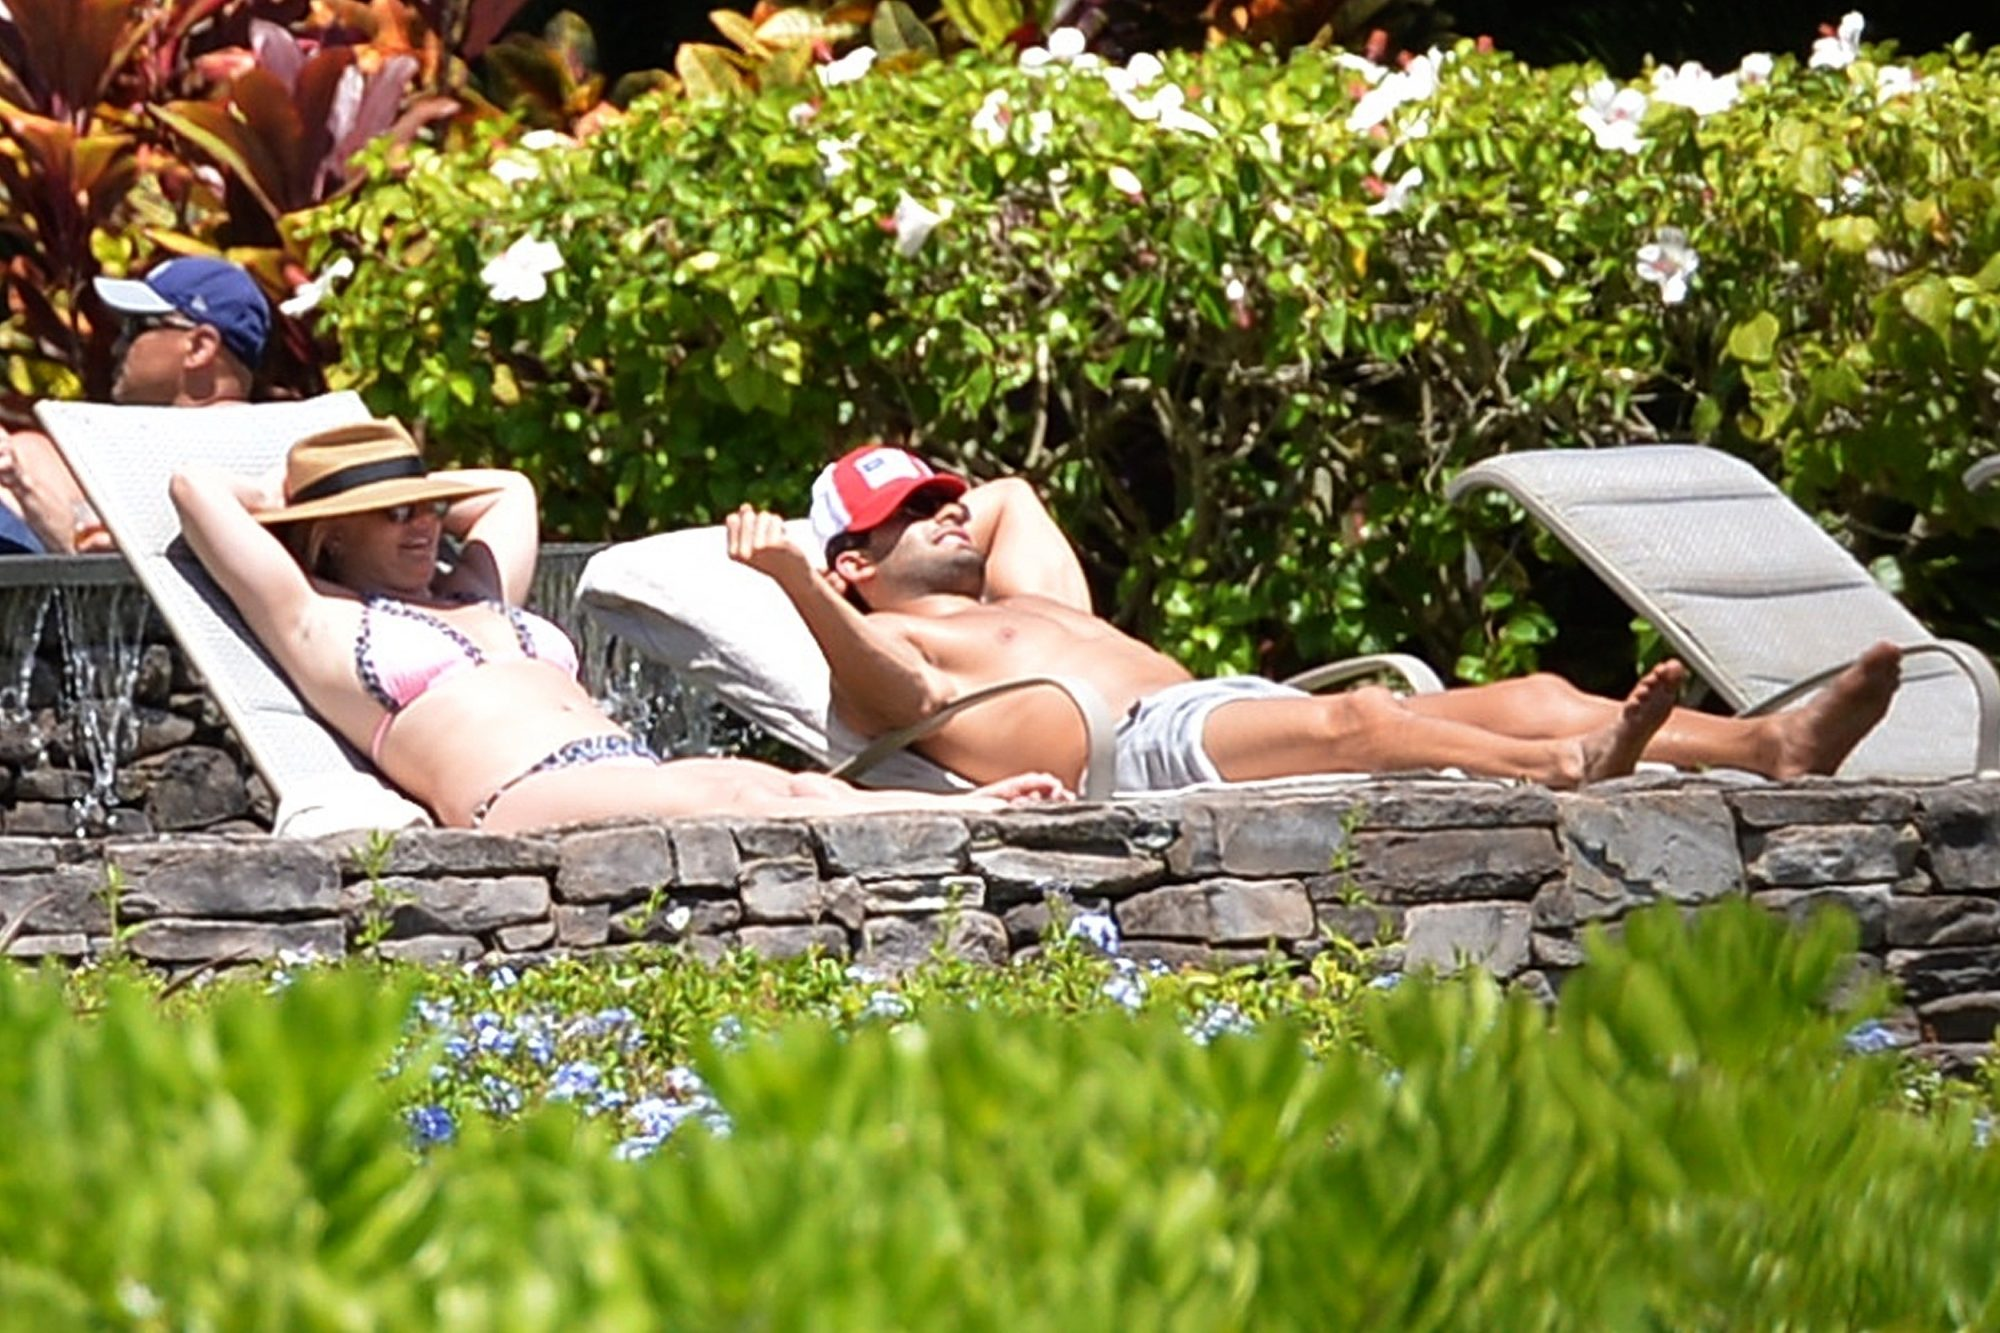 Britney Spears & Boyfriend Escape to Maui after her Explosive Hearing